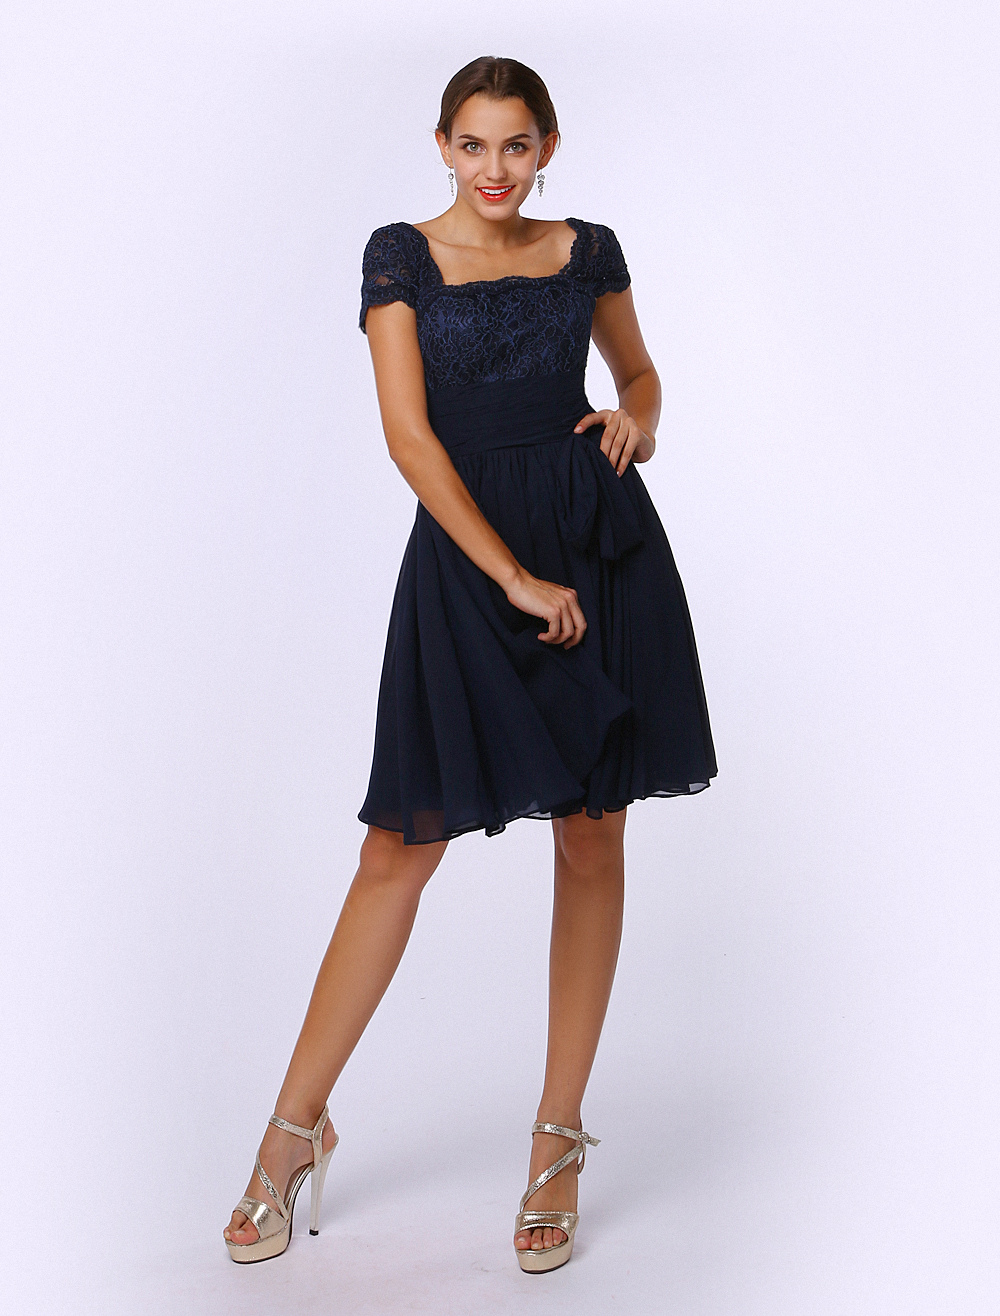 Navy Mother of the Bride Dress A-Line Strapless Lace Dress Wedding Guest Dress photo